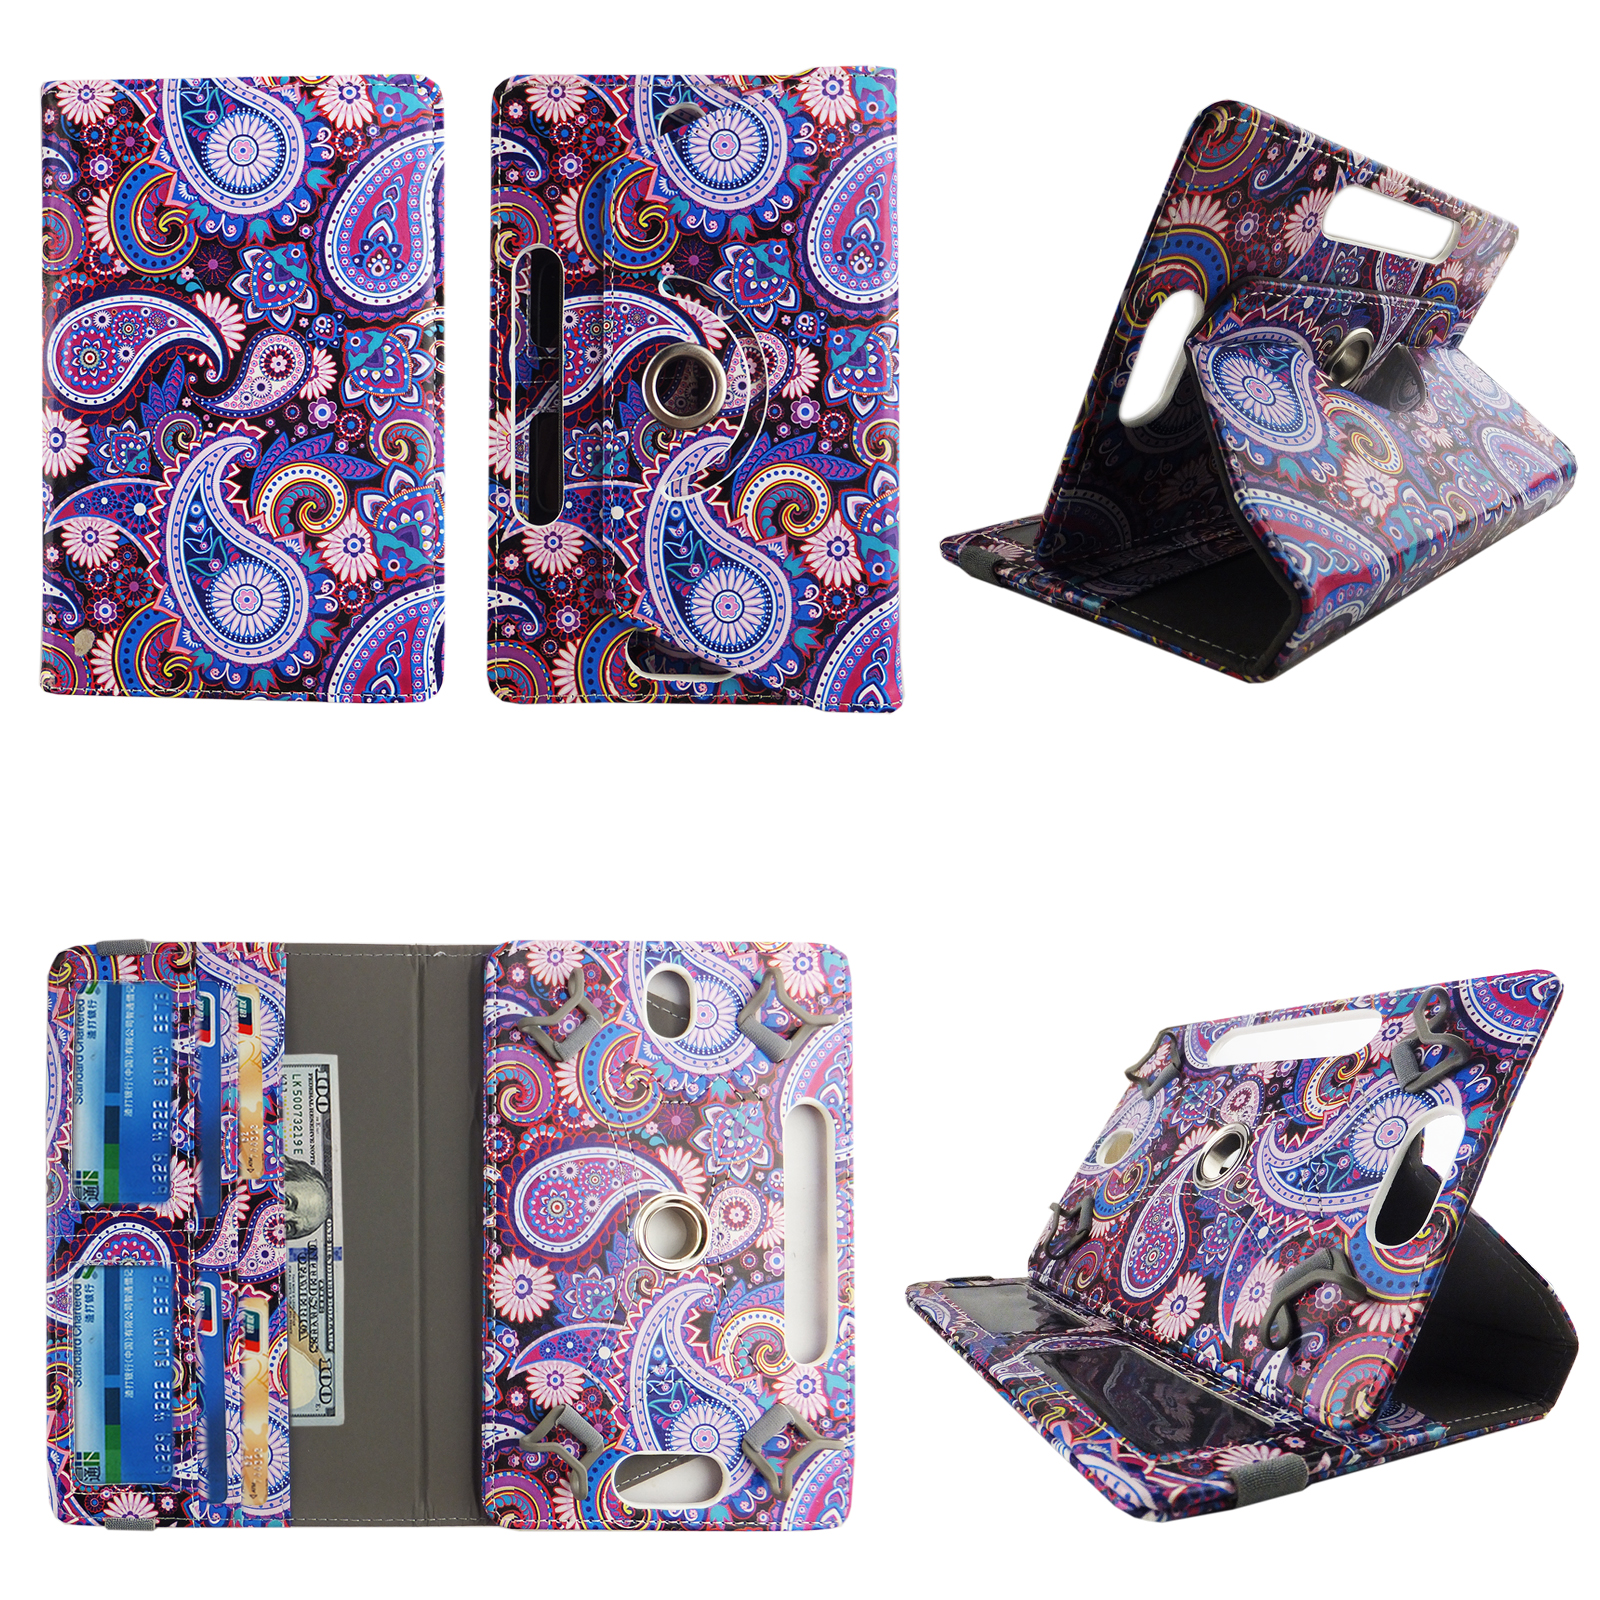 "Purple Paisley tablet case 7 inch for Asus Nexus 7"" 7inch android tablet cases 360 rotating slim folio stand protector pu leather cover travel e-reader cash slots"